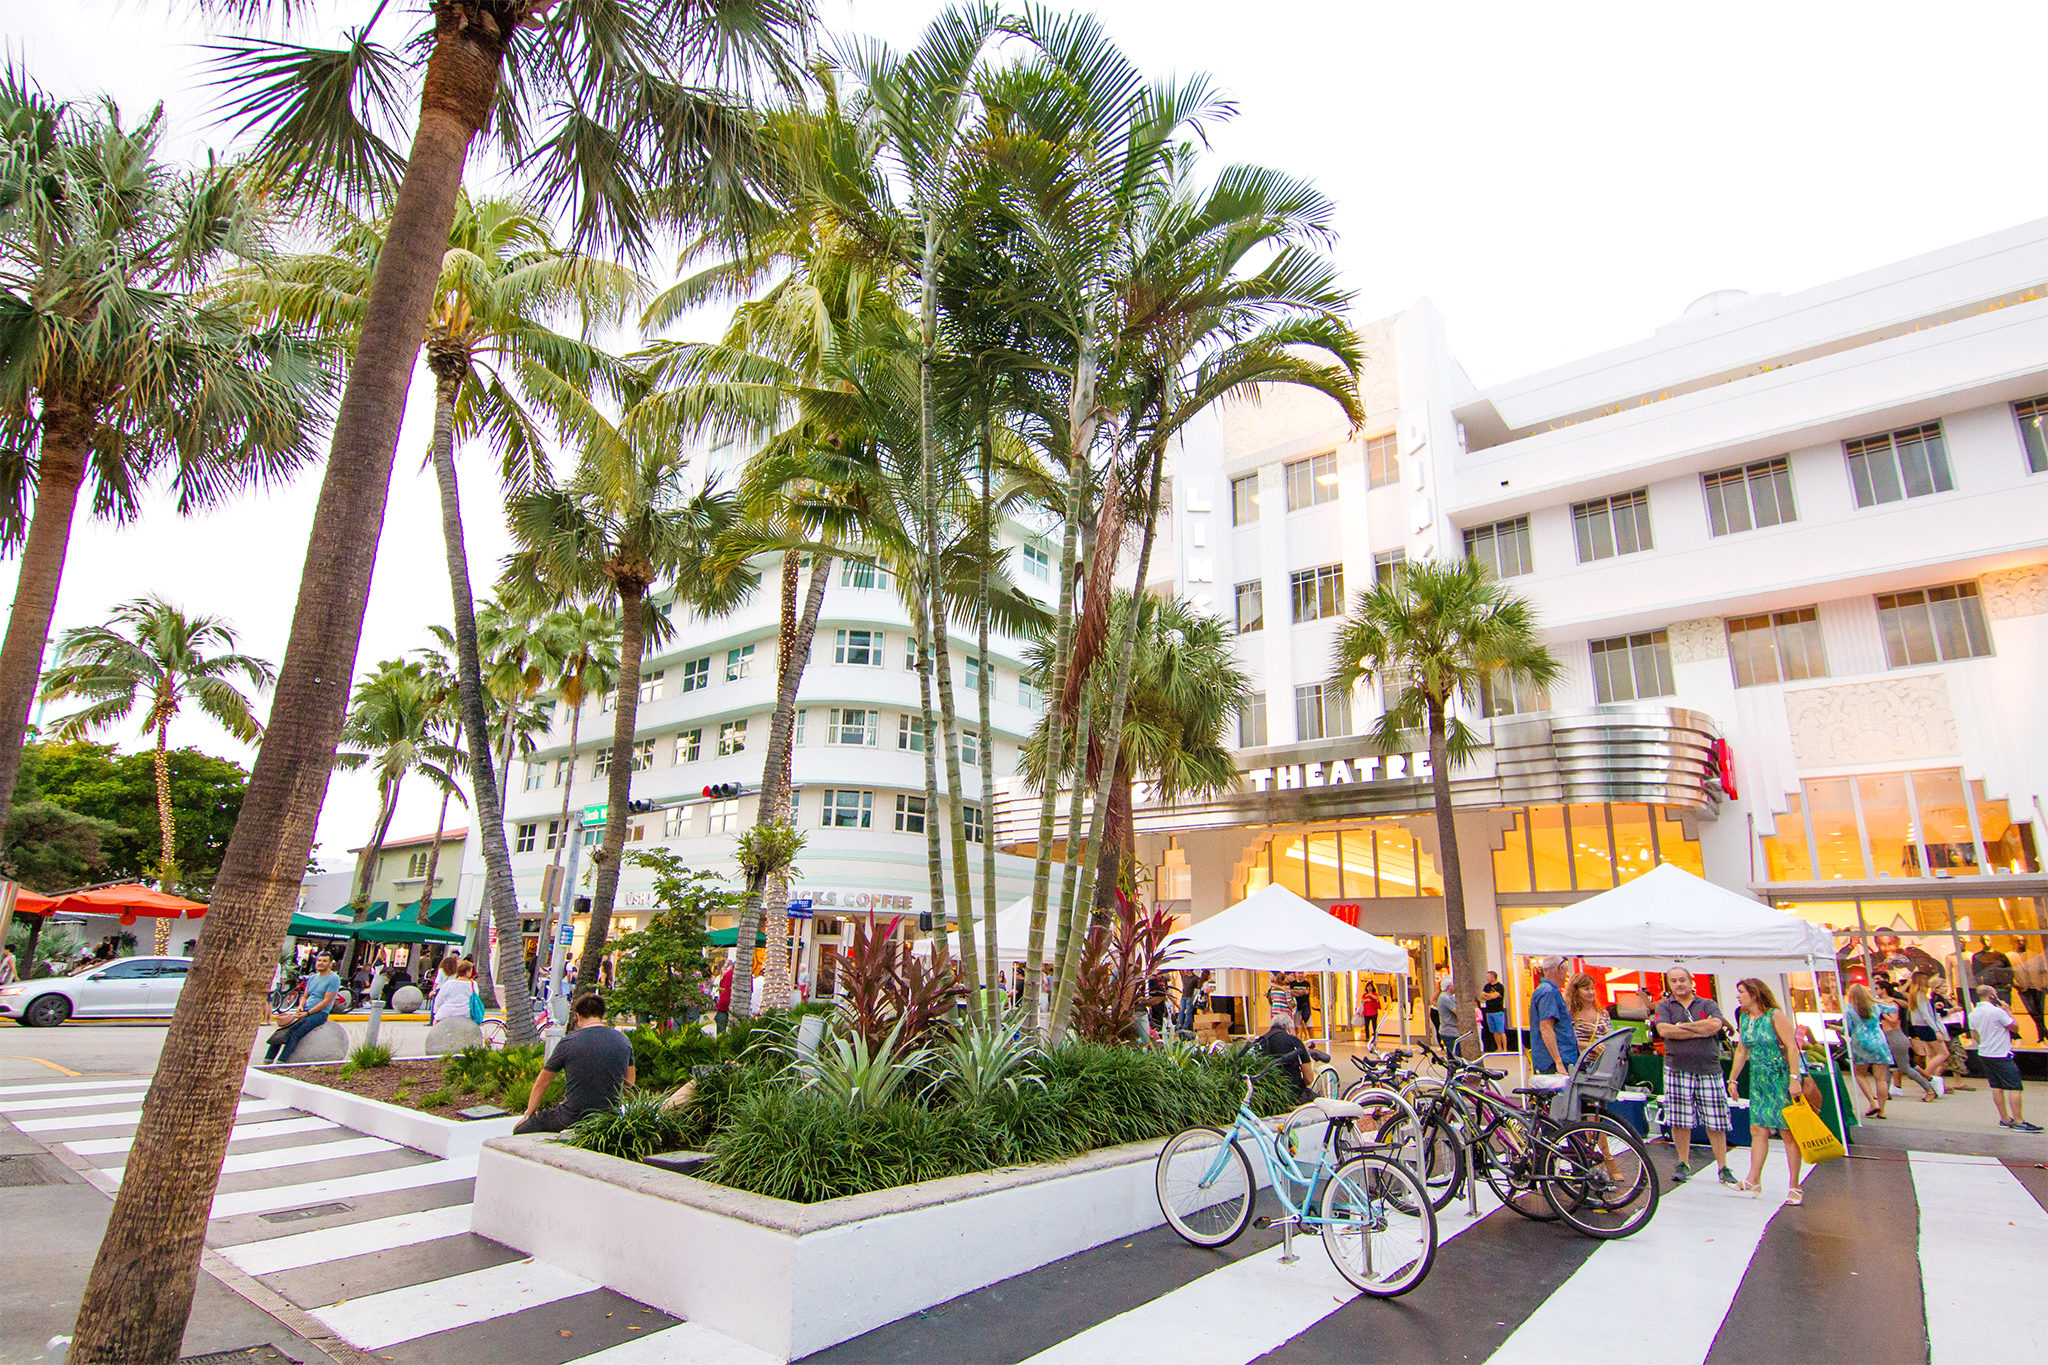 Our location in South Beach has become a favorite of locals and visitors alike. It may have to do with our casual brasserie ambiance and outdoor tables along the pedestrian walkways of Lincoln Road. Others tell us it's our global menu, with local favorites such as Chilean /5(56).